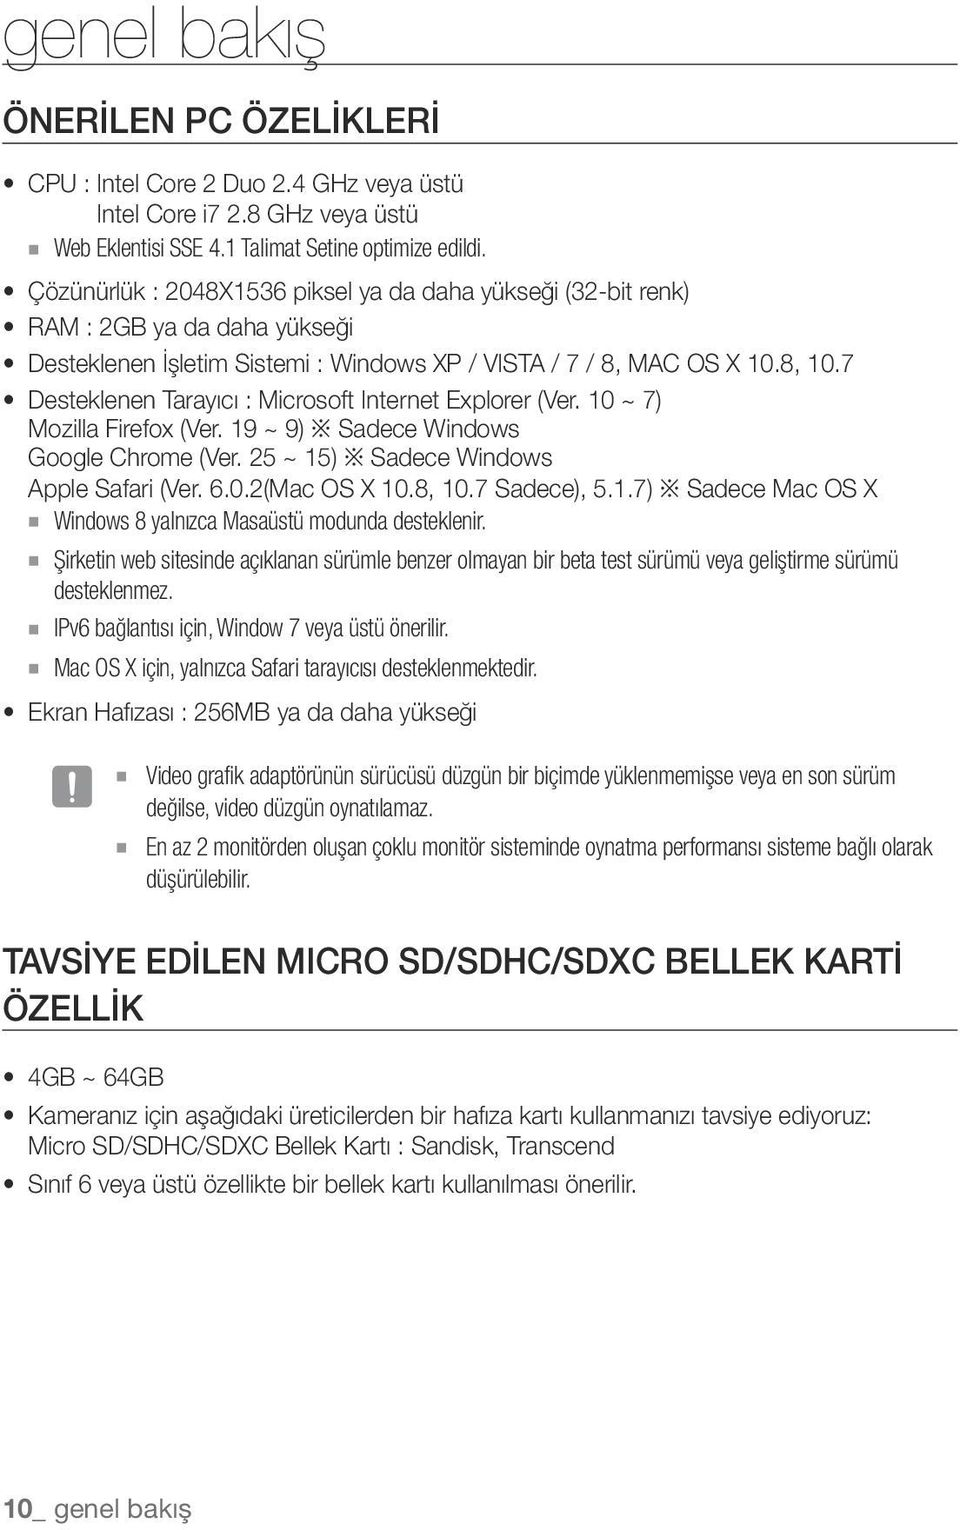 7 Desteklenen Tarayıcı : Microsoft Internet Explorer (Ver. 10 ~ 7) Mozilla Firefox (Ver. 19 ~ 9) Sadece Windows Google Chrome (Ver. 25 ~ 15) Sadece Windows Apple Safari (Ver. 6.0.2(Mac OS X 10.8, 10.